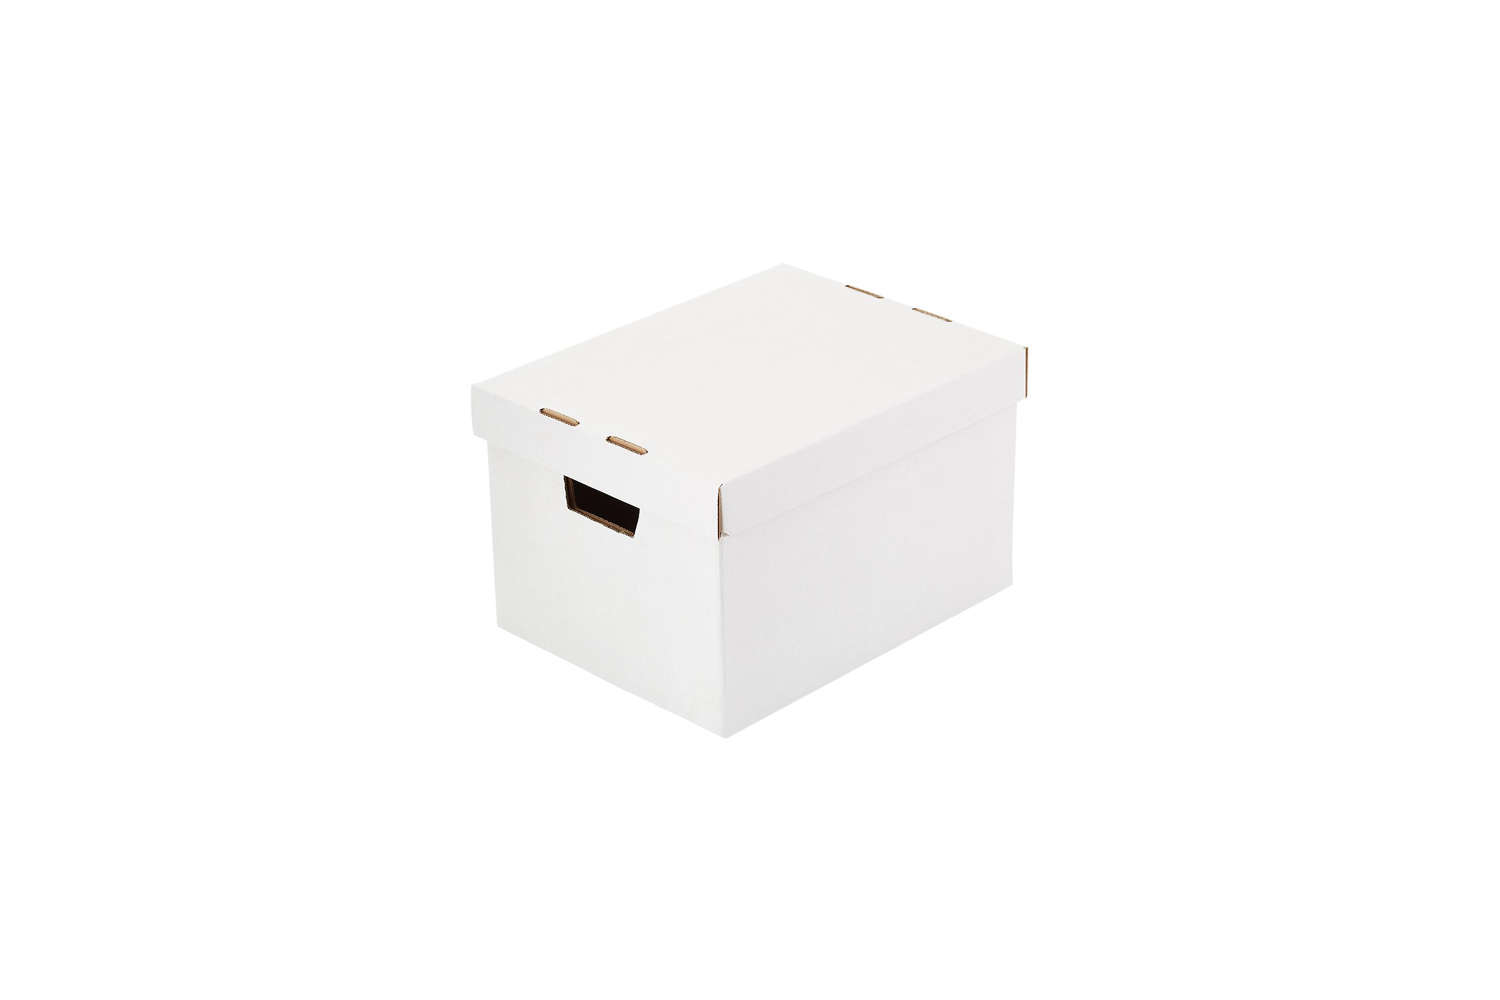 Cardboard Document Storage Boxes Container Store White